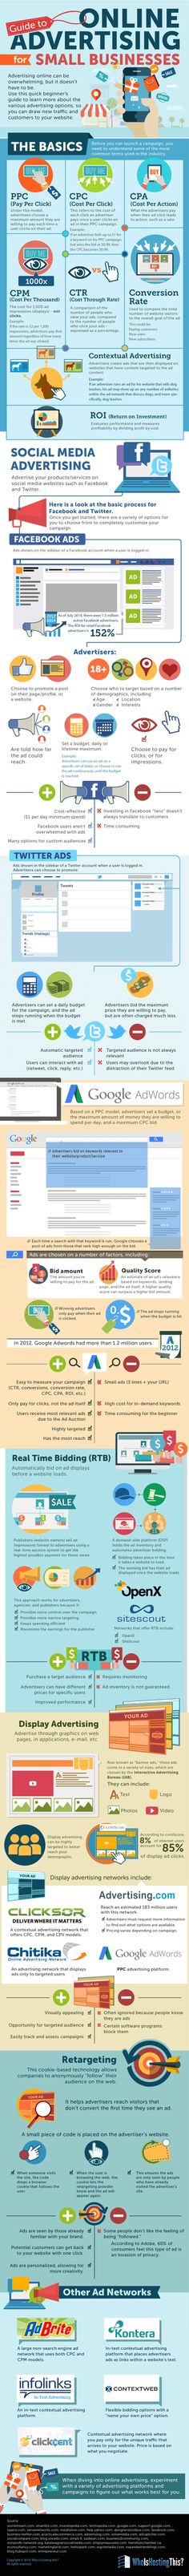 the-beginners-guide-to-online-advertising-for-small-business-infographic-image